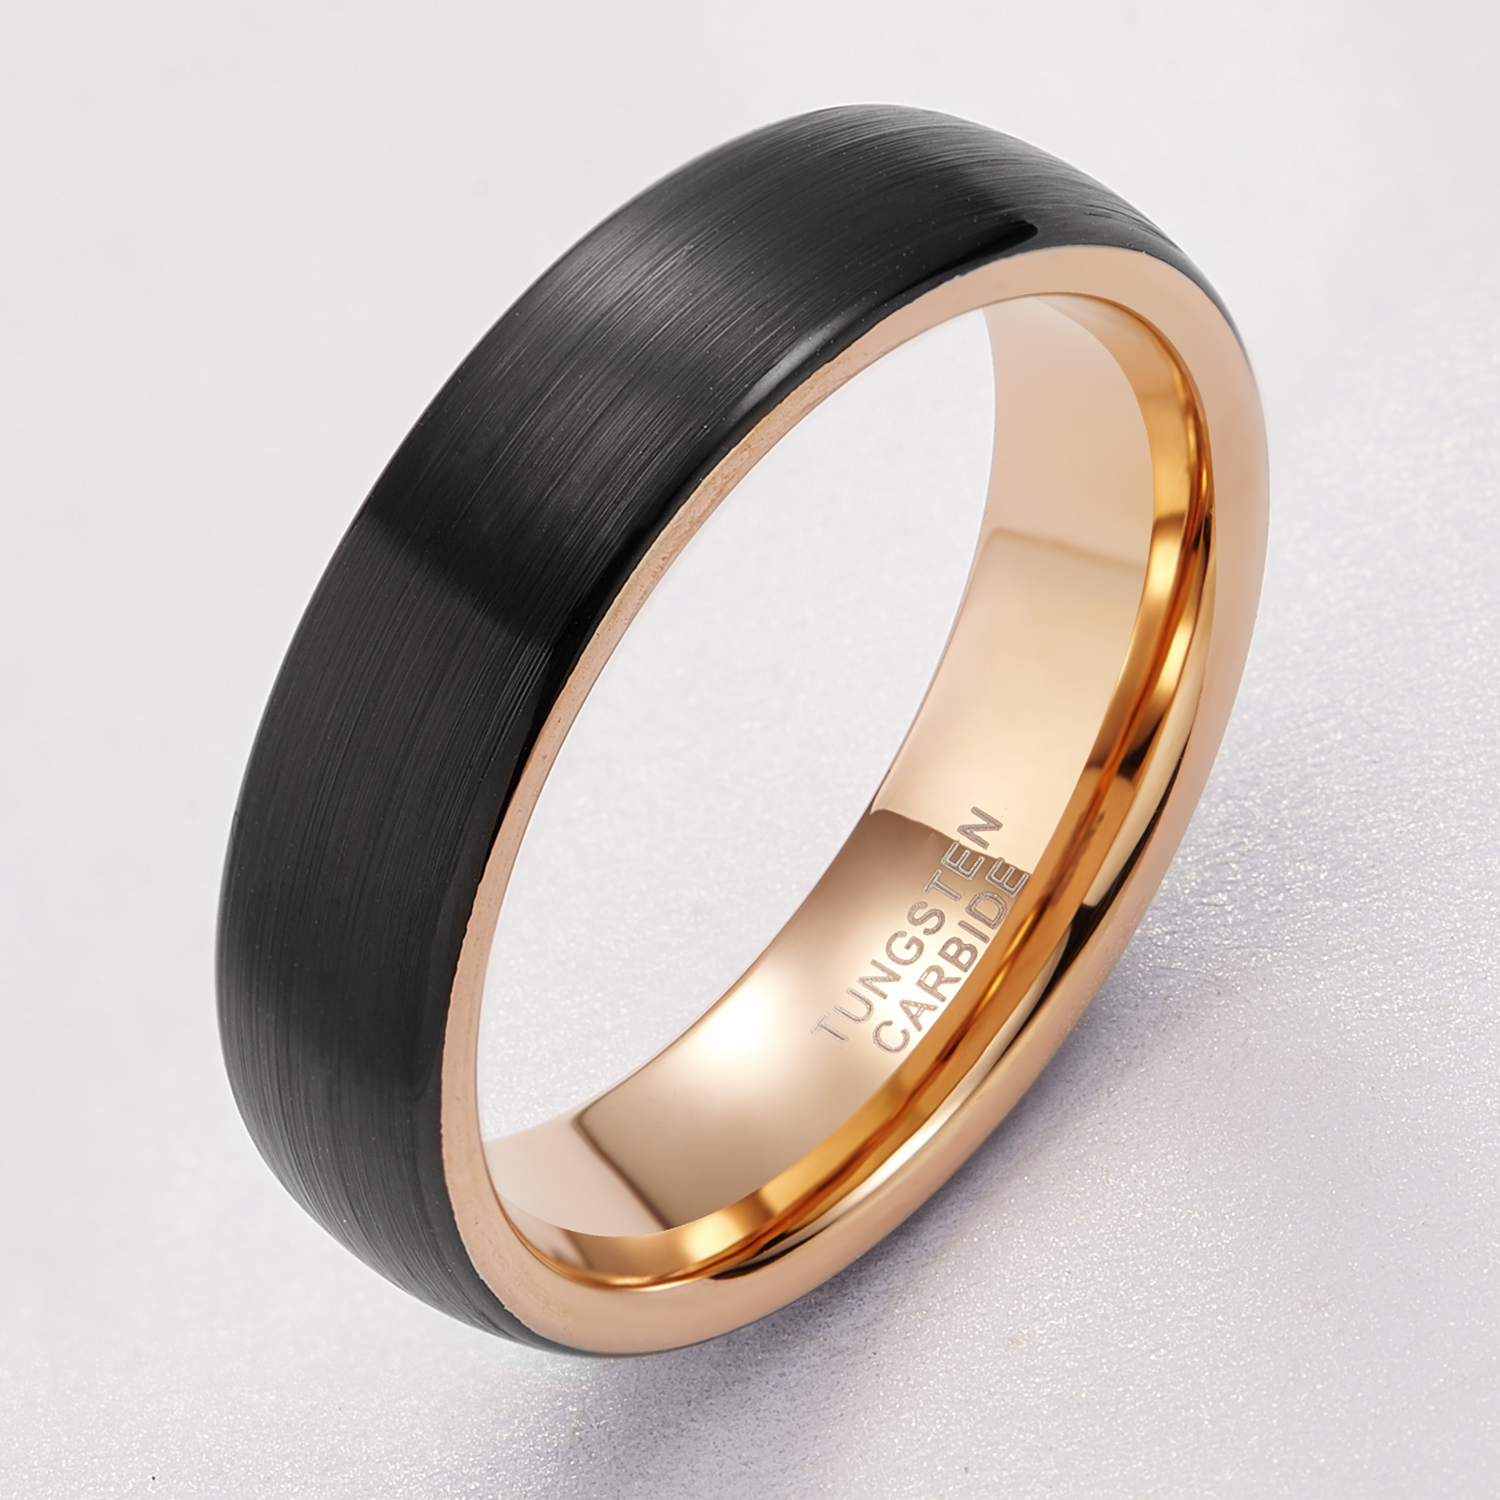 8//6mm Brushed Men /& Women Dome Tungsten Carbide Ring Comfort Fit Wedding Band